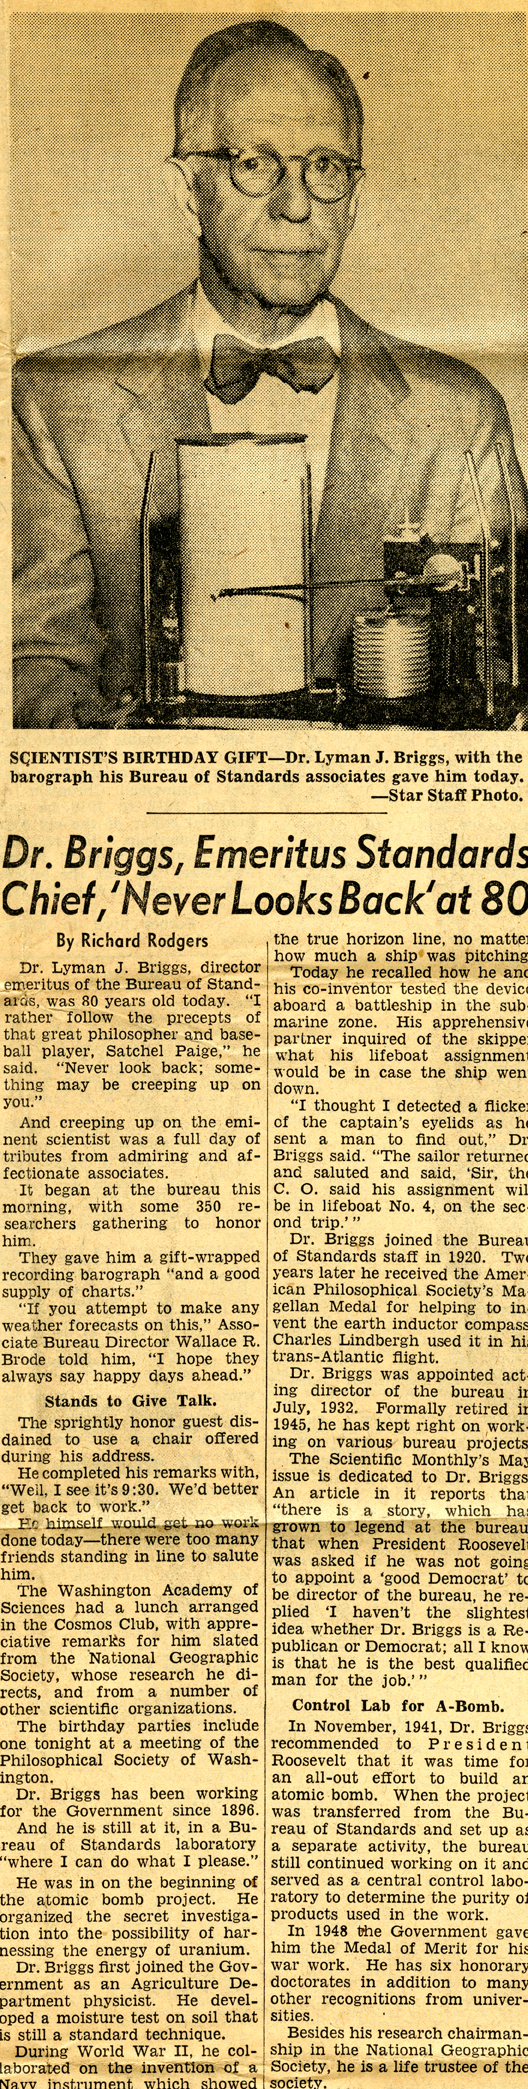 """Dr. Lyman Briggs Looks Back at 80 Years"" Newspaper Article"